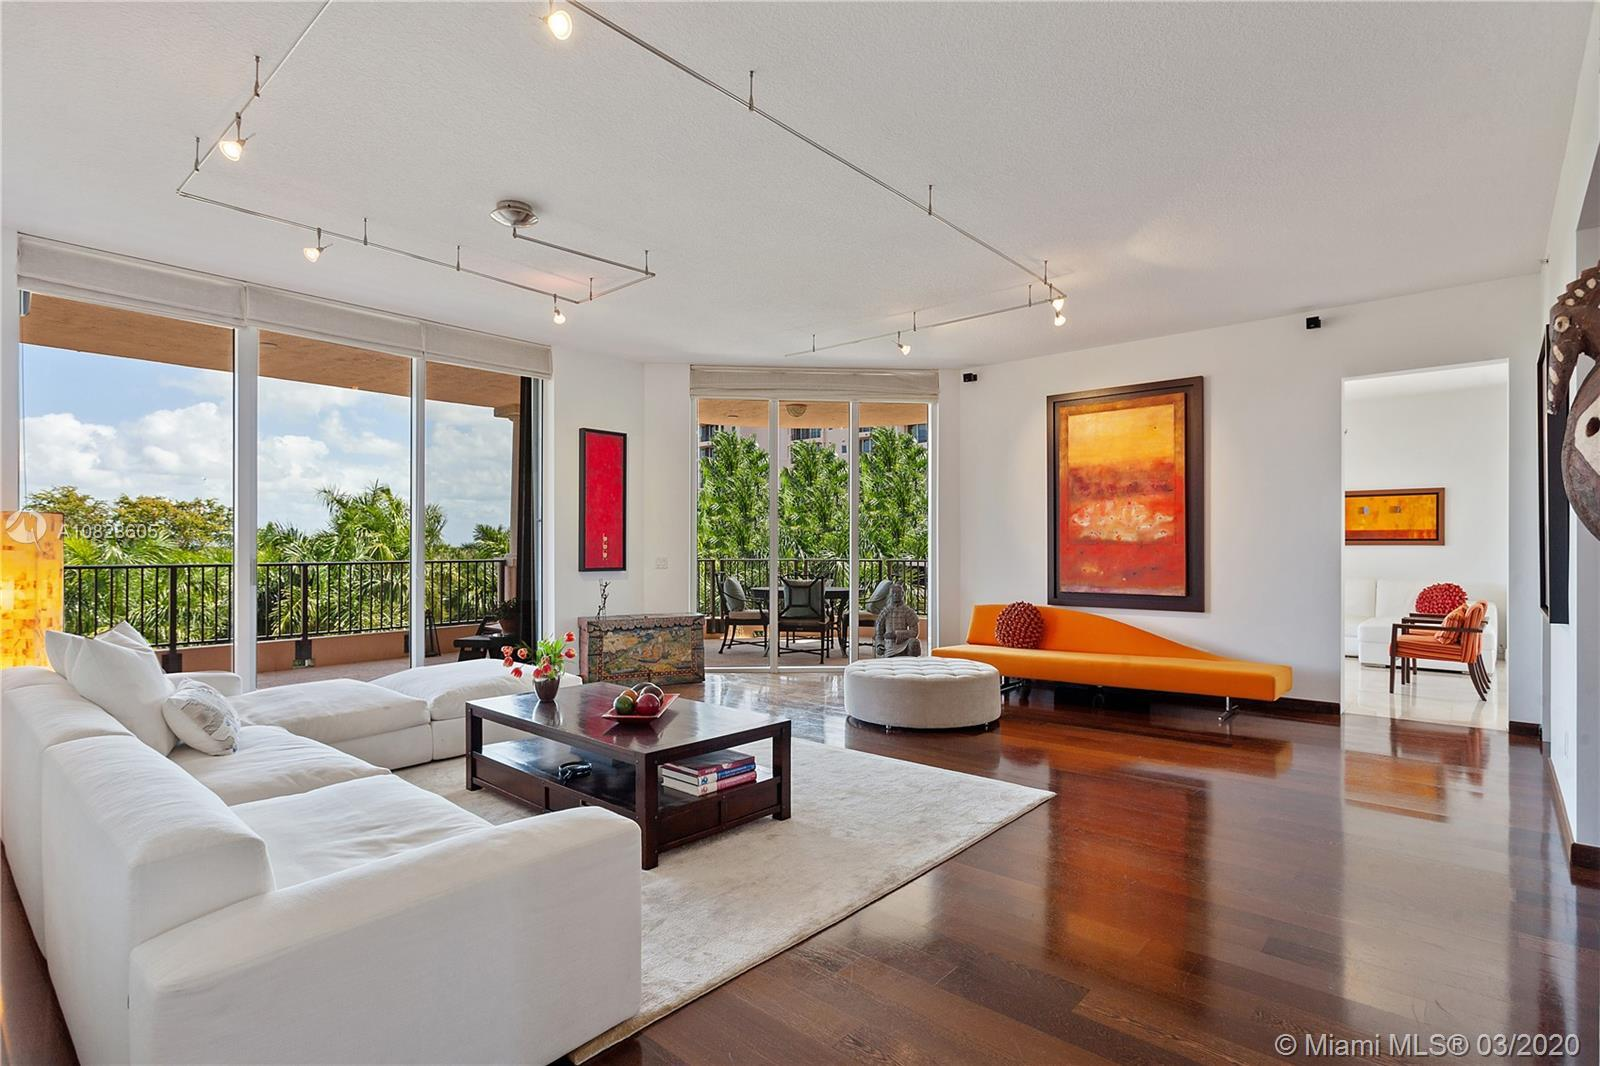 Magnificent,one of kind 4 bed/4.5 bath residence at prestigious Milano at Deering Bay.This modern fl